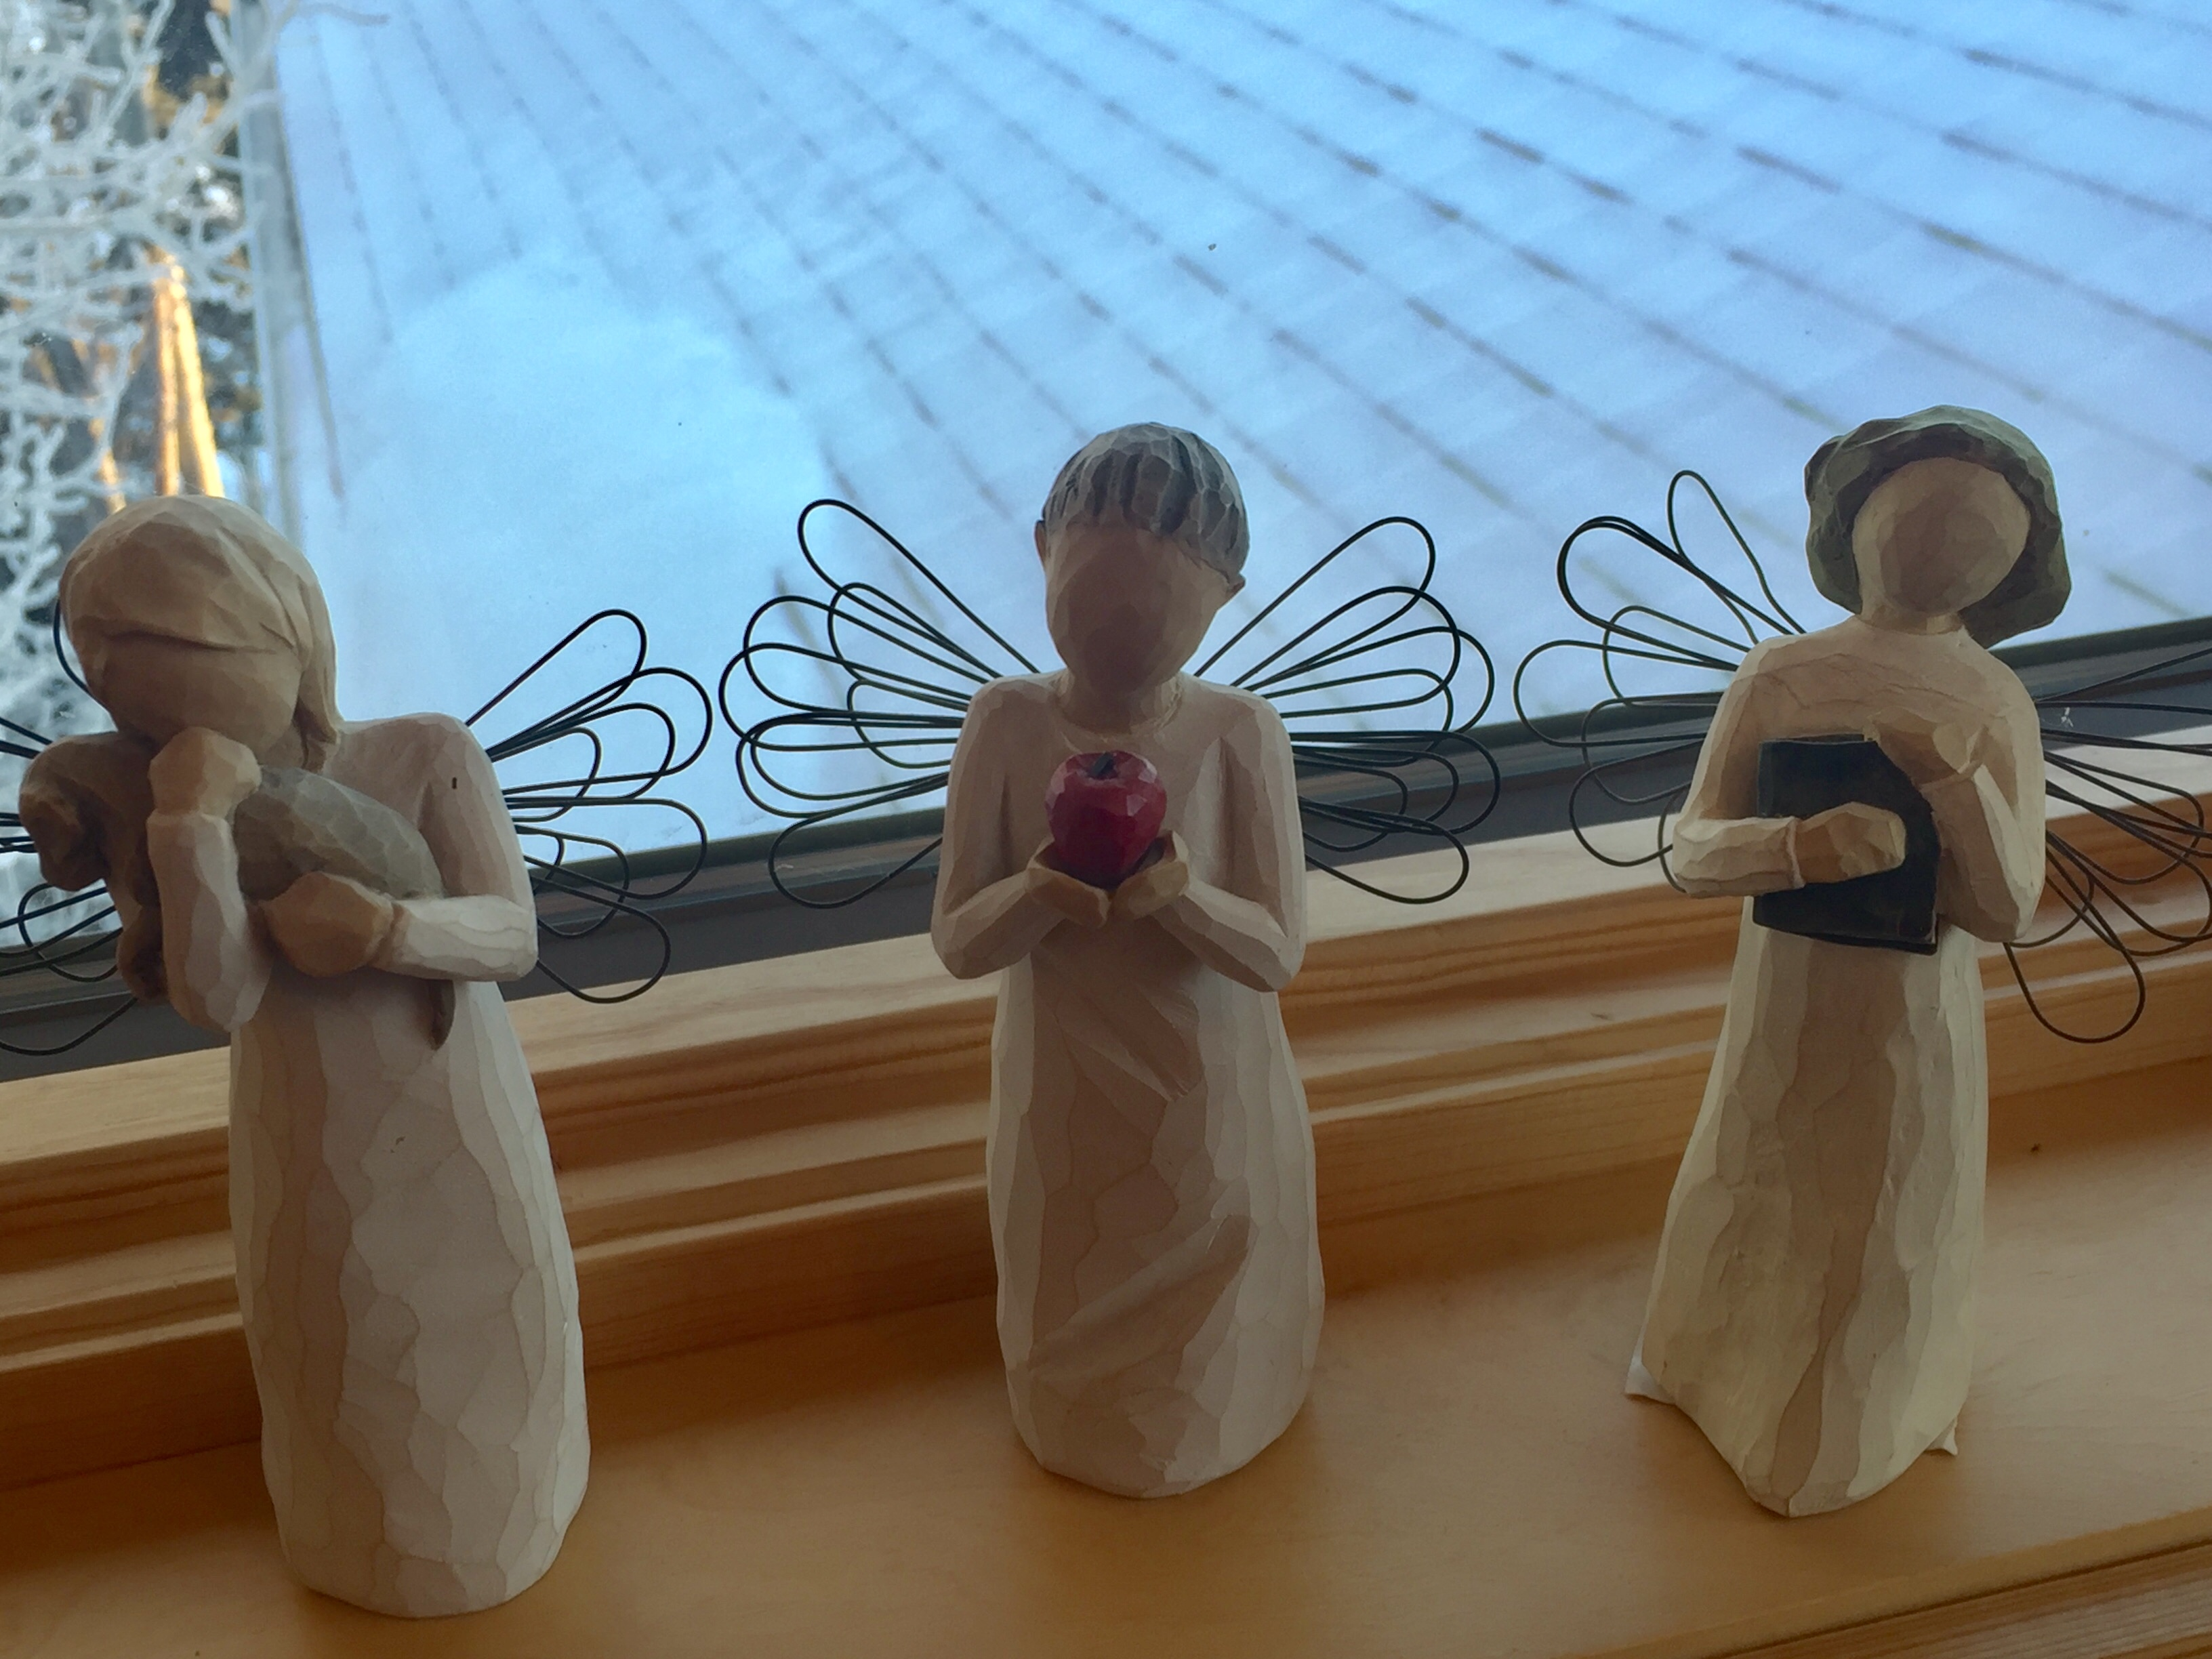 3 angels on ledge.jpg